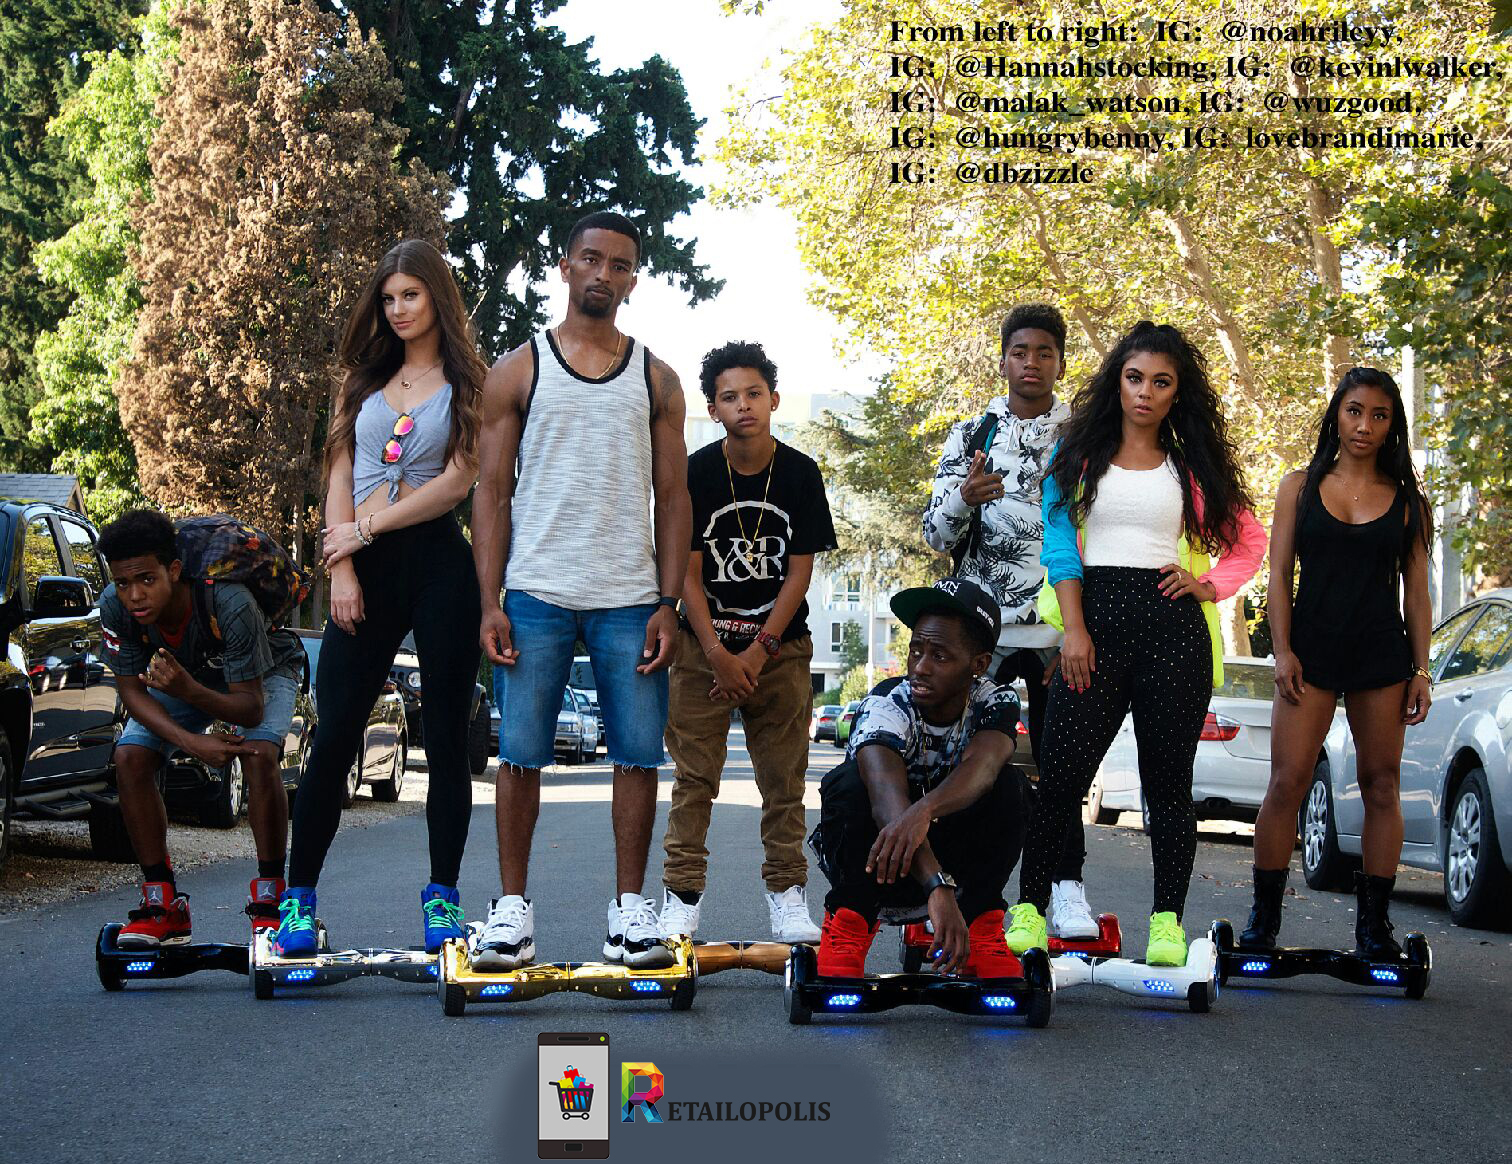 Kevin L Walker, Donnabella Mortel, Hannah Stocking, LoveBRandimarie, MalakWatson, and Wuzgood - Retailopolis (2015)